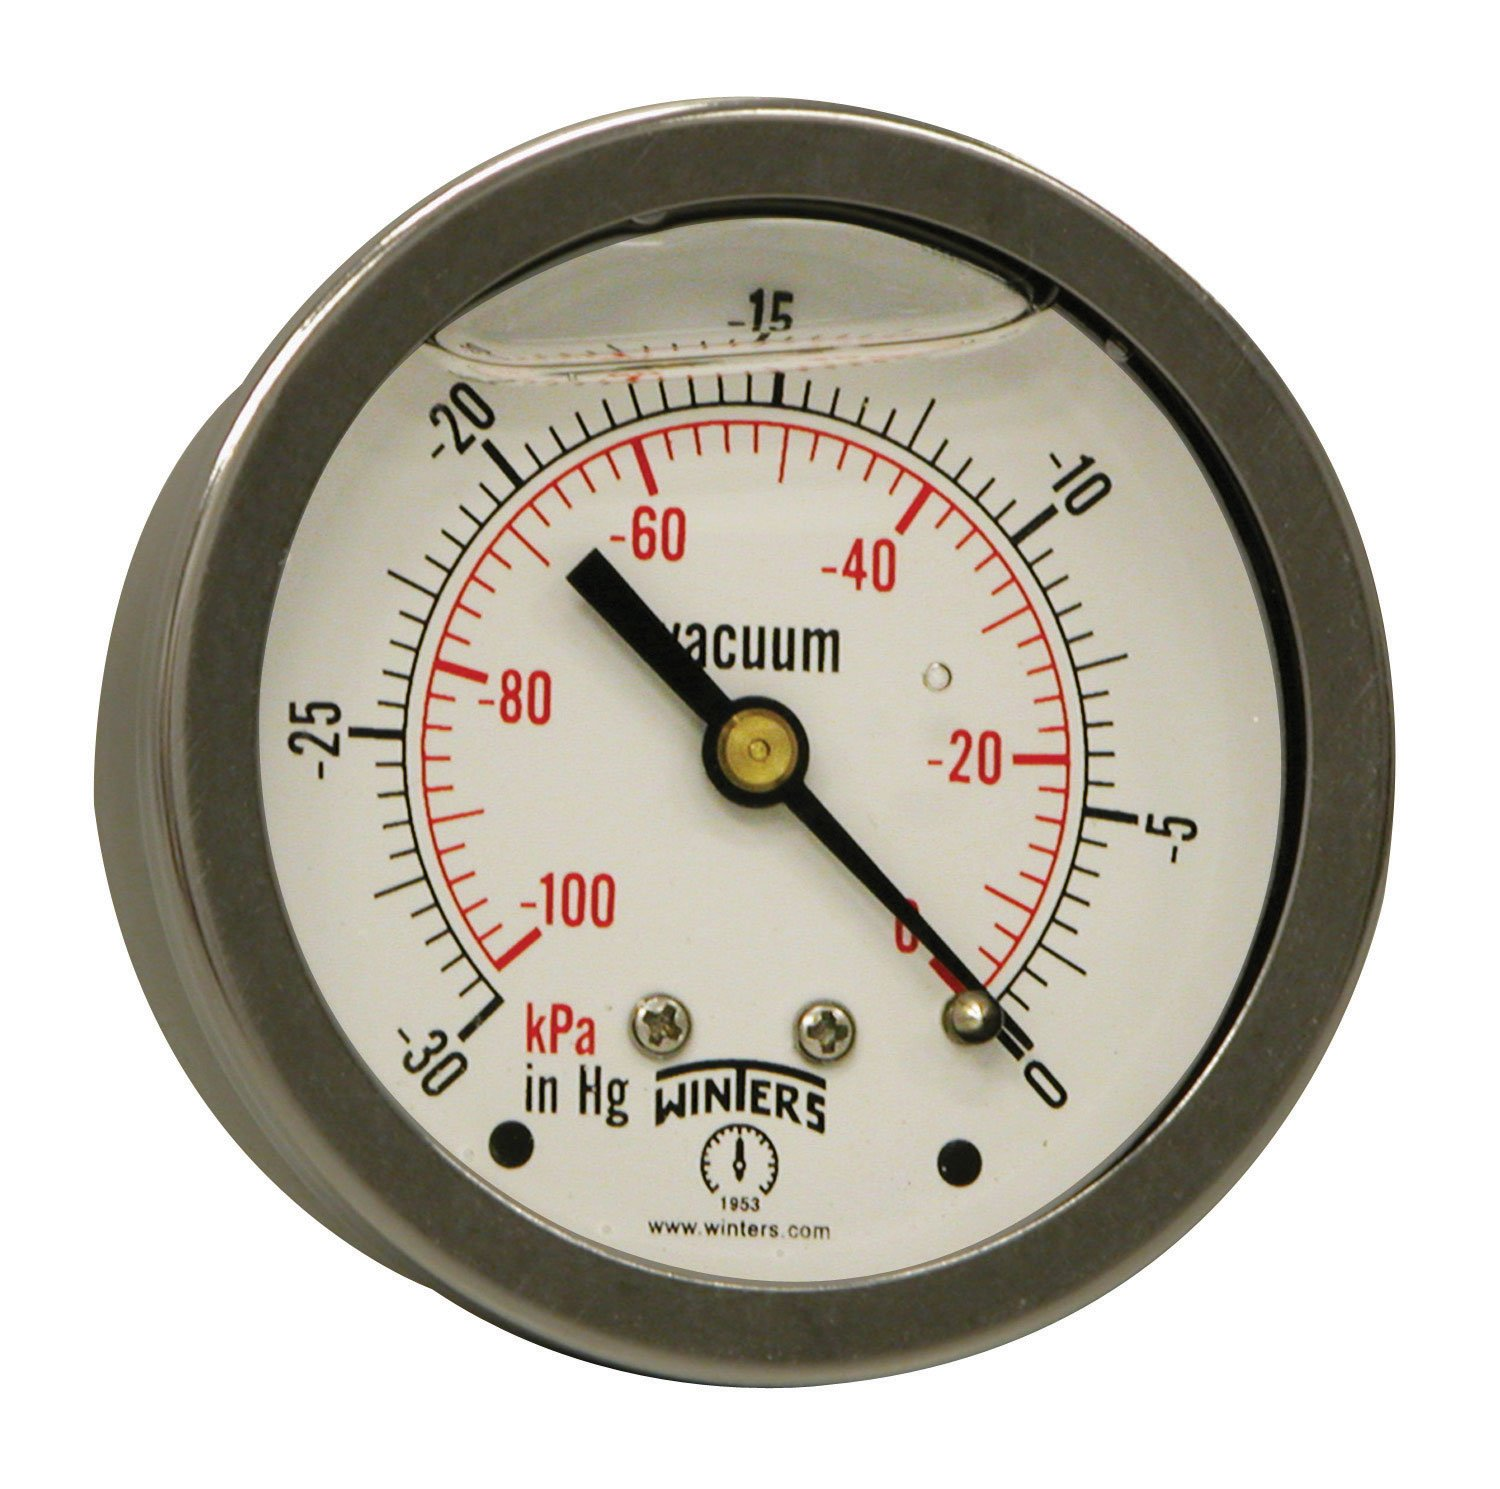 """Winters PFQ Series Stainless Steel 304 Dual Scale Liquid Filled Pressure Gauge with Brass Internals, 30""""Hg Vacuum/kpa, 2-1/2"""" Dial Display, +/-1.5% Accuracy, 1/4"""" NPT Center Back Mount"""